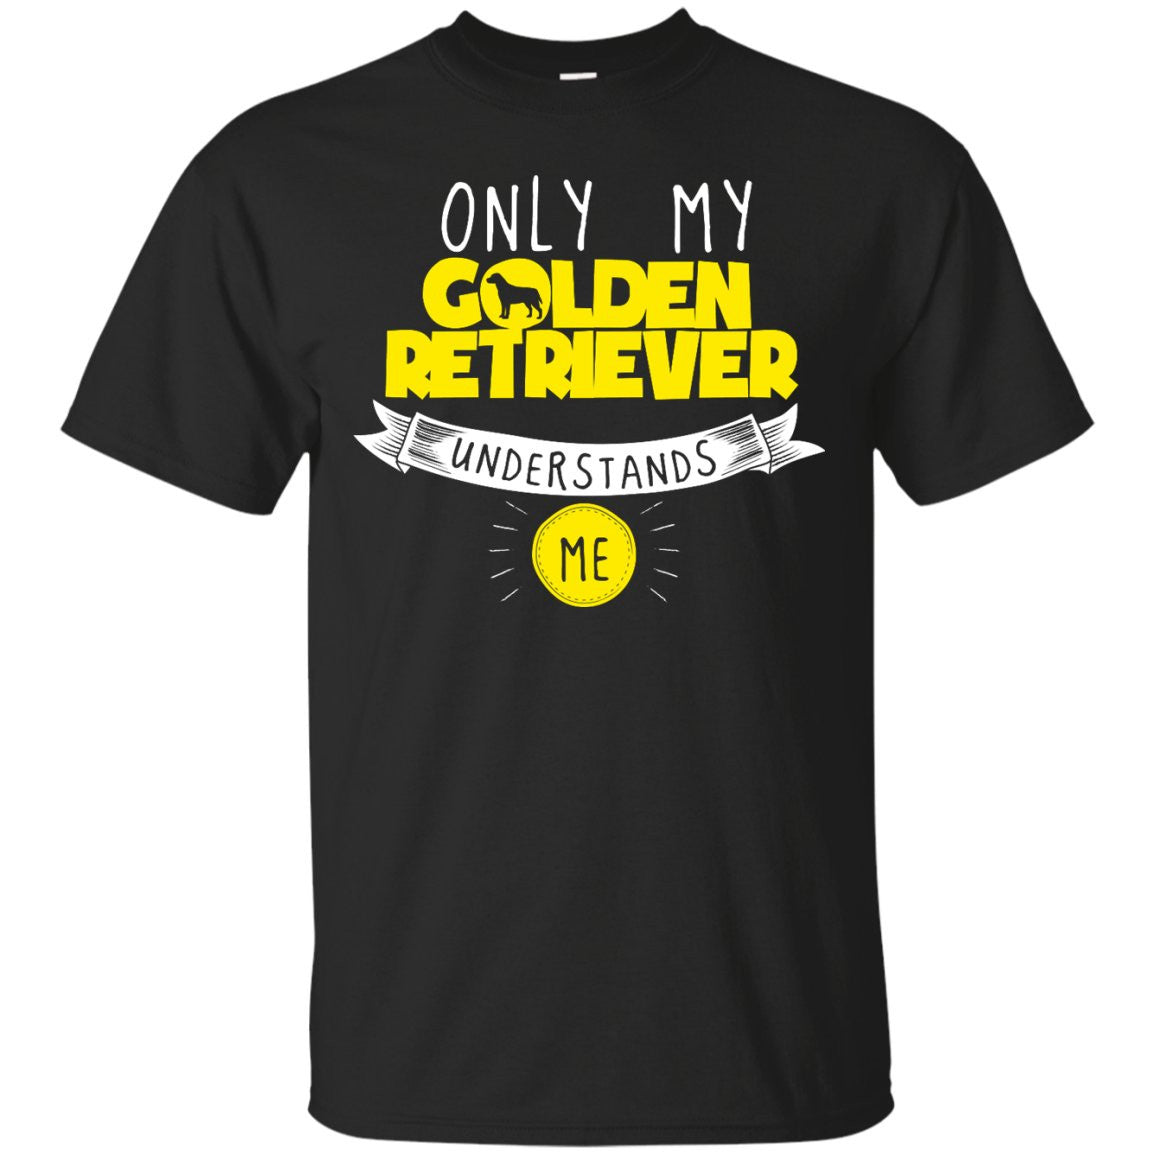 Only My Golden Retriever Understands Me Yellow -  Custom Ultra Cotton T-Shirt